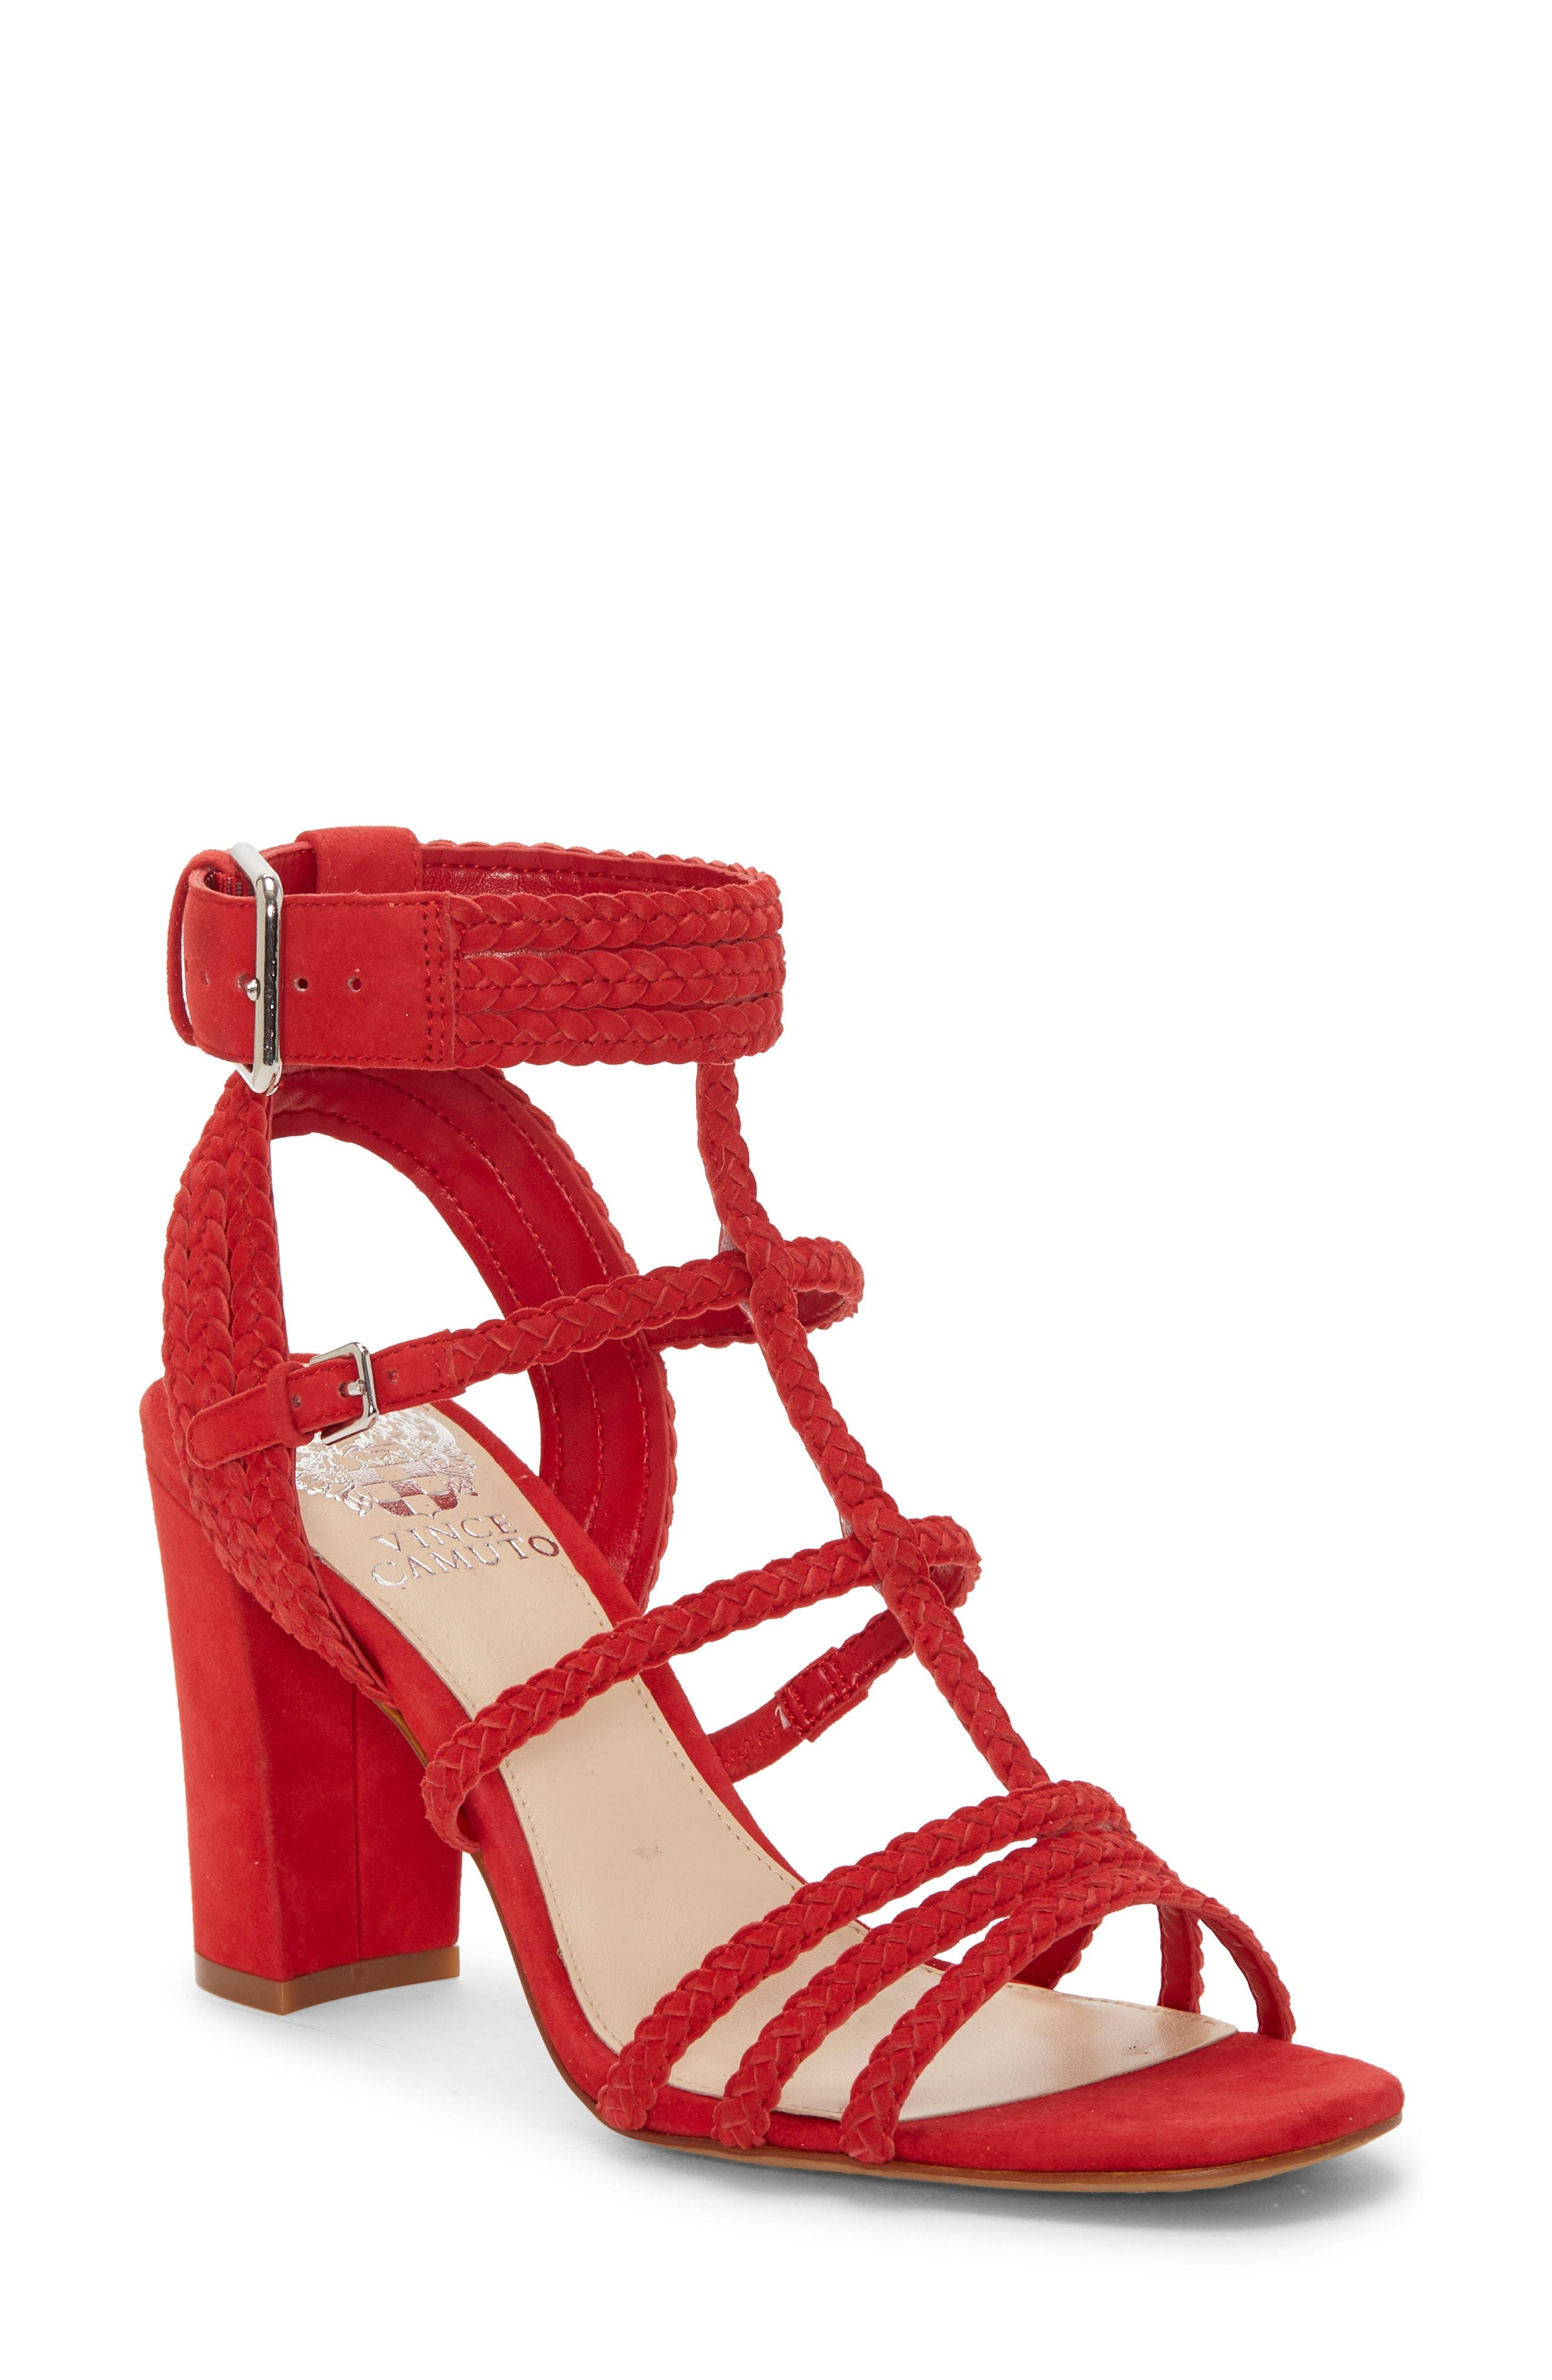 1bbb254a170f Lyst - Vince Camuto Wechilla Sandal in Red